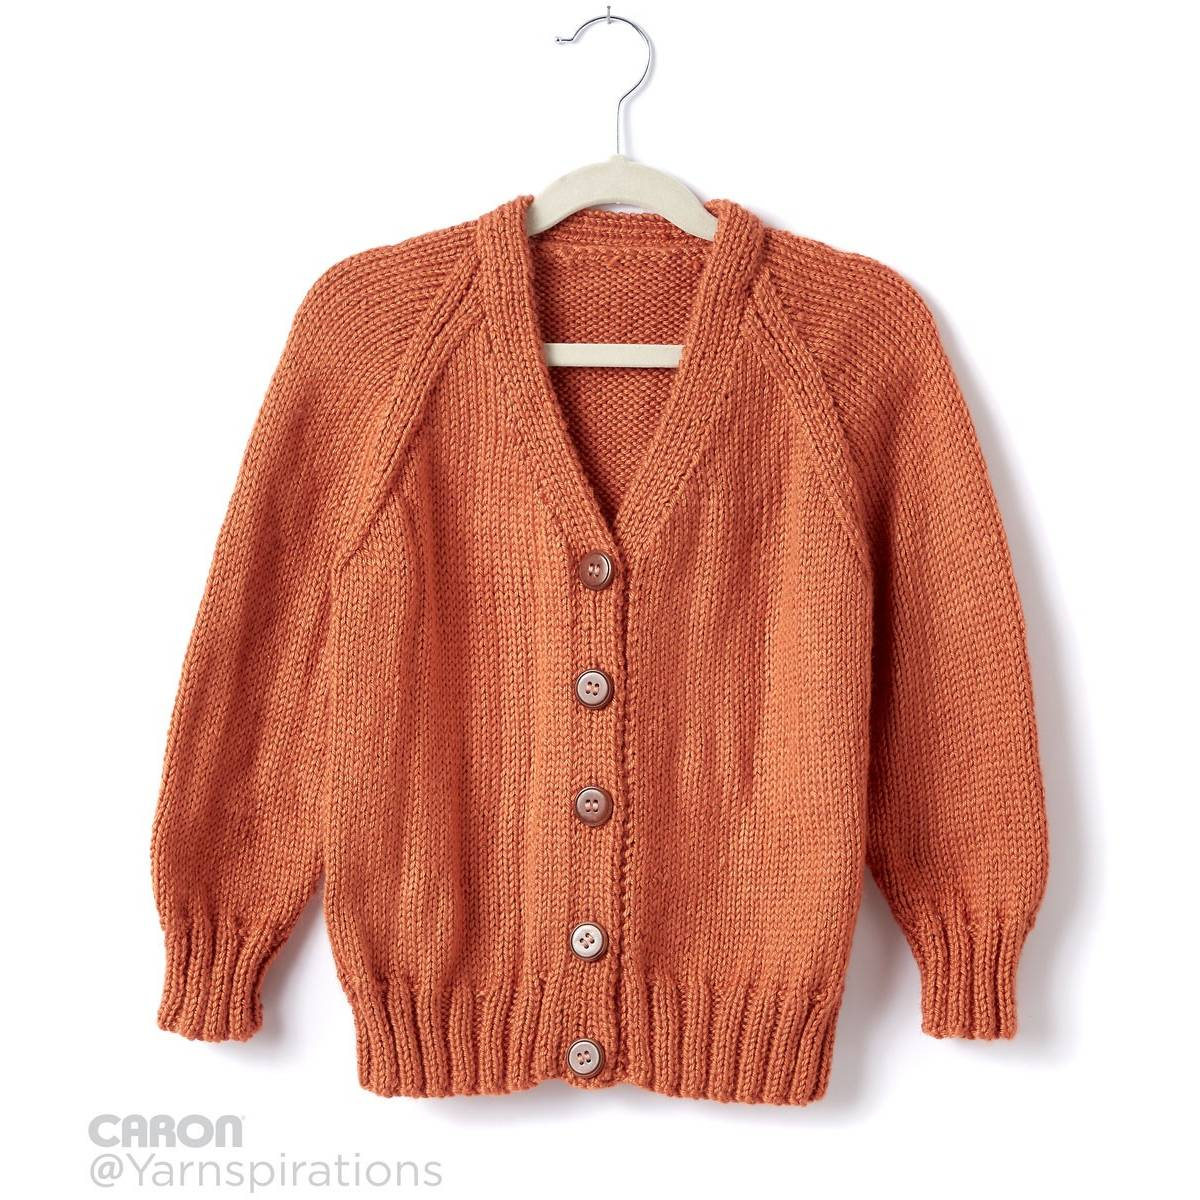 Knitted Childrens Sweaters Free Patterns Free Pattern Caron Childs Knit V Neck Cardigan Hobcraft